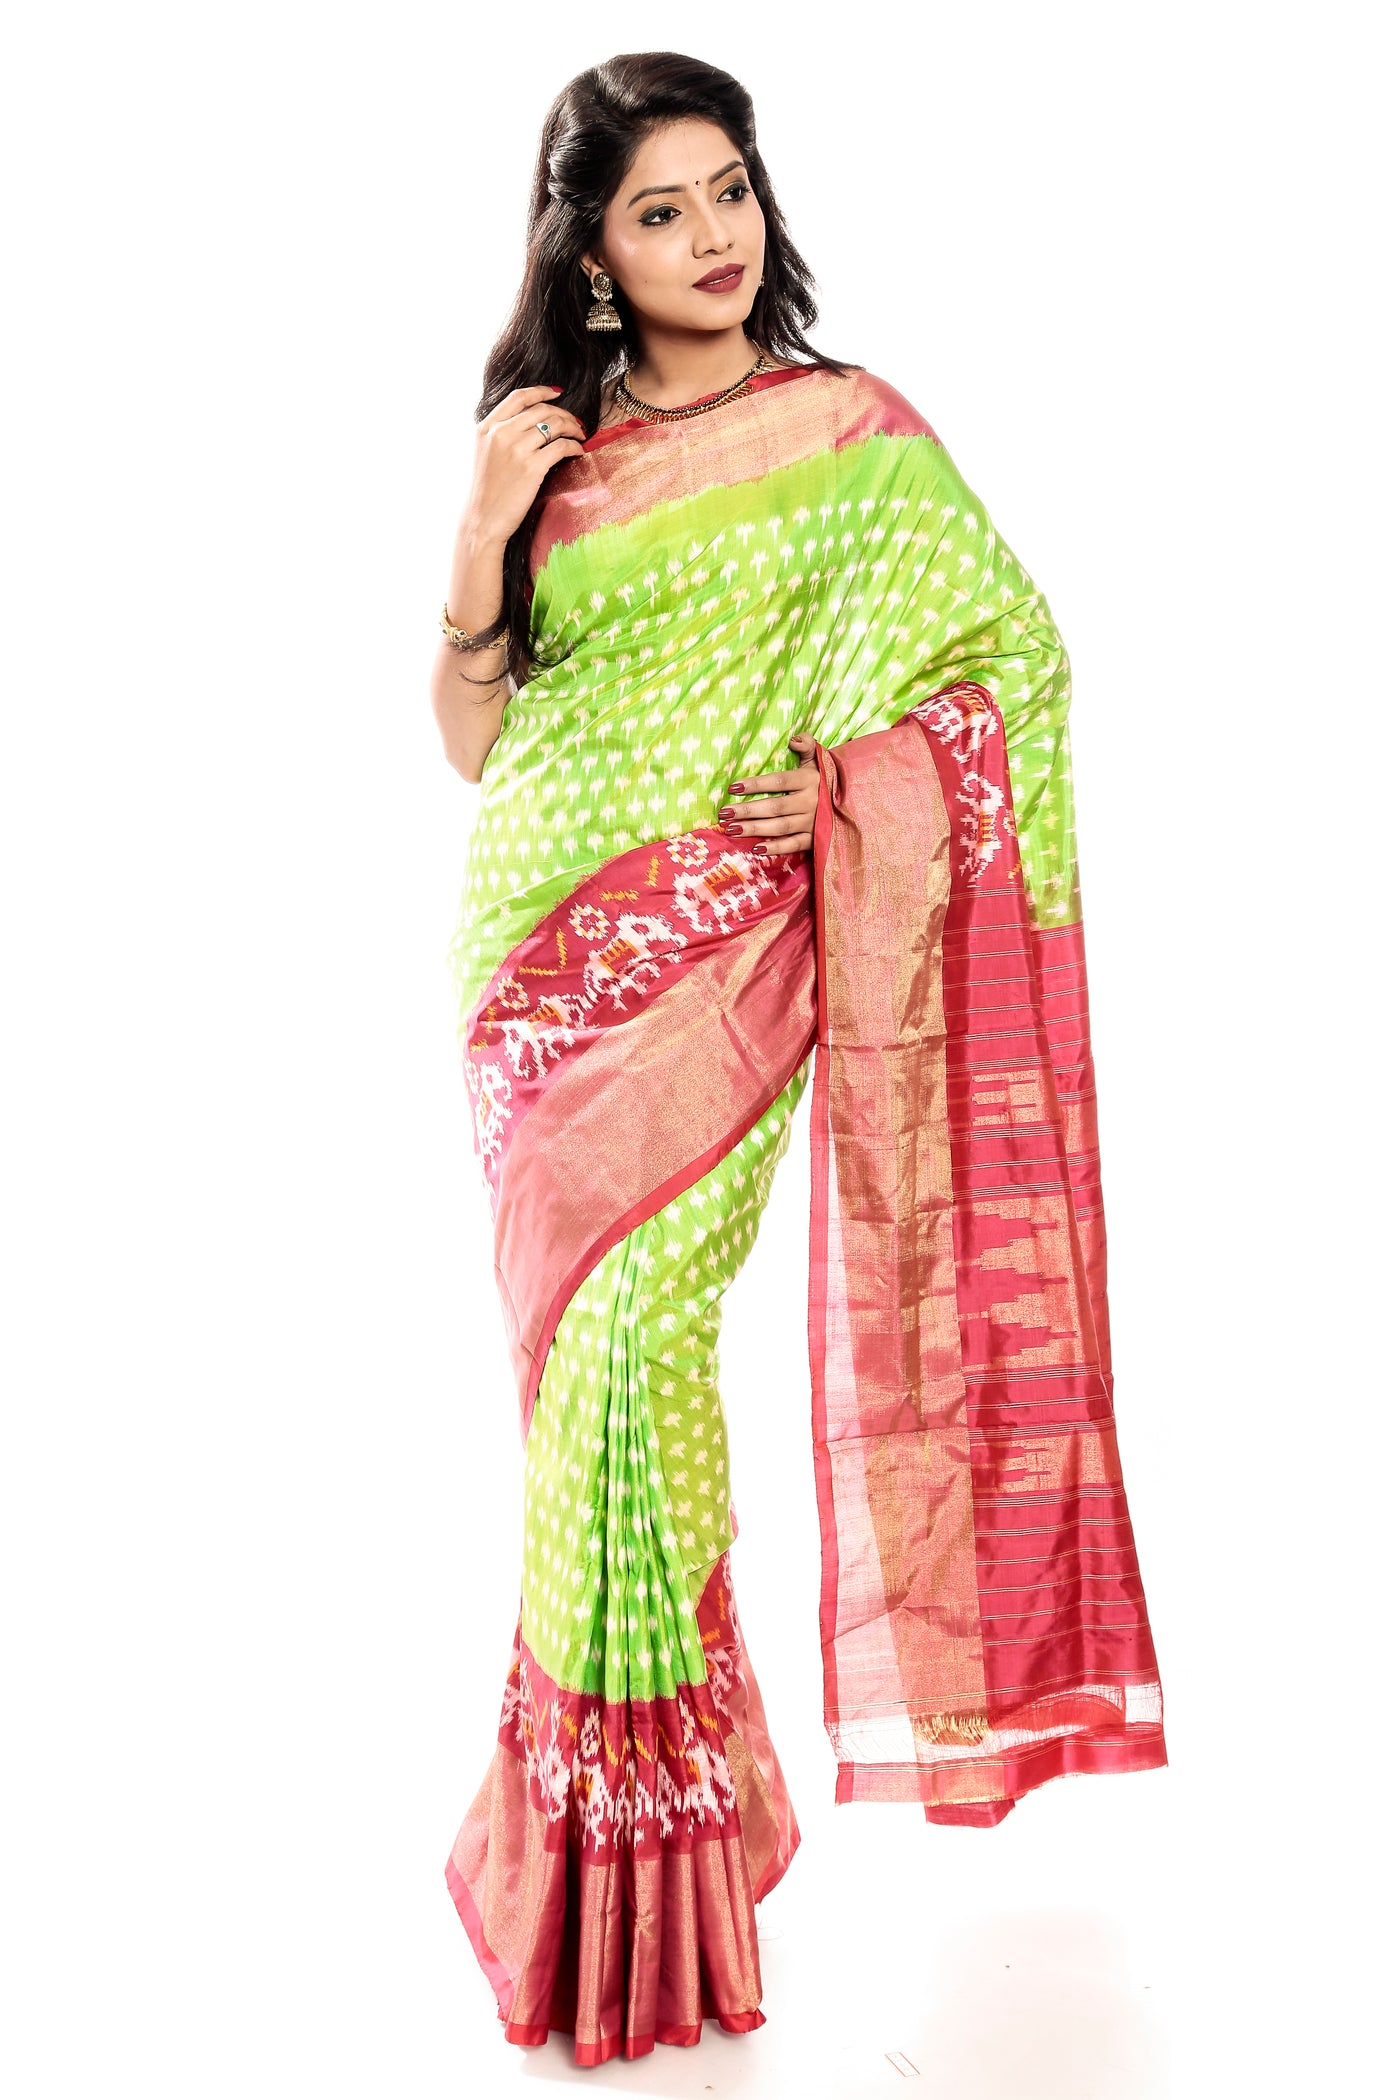 Light green pochampally sarees online USA, Uk, Canada